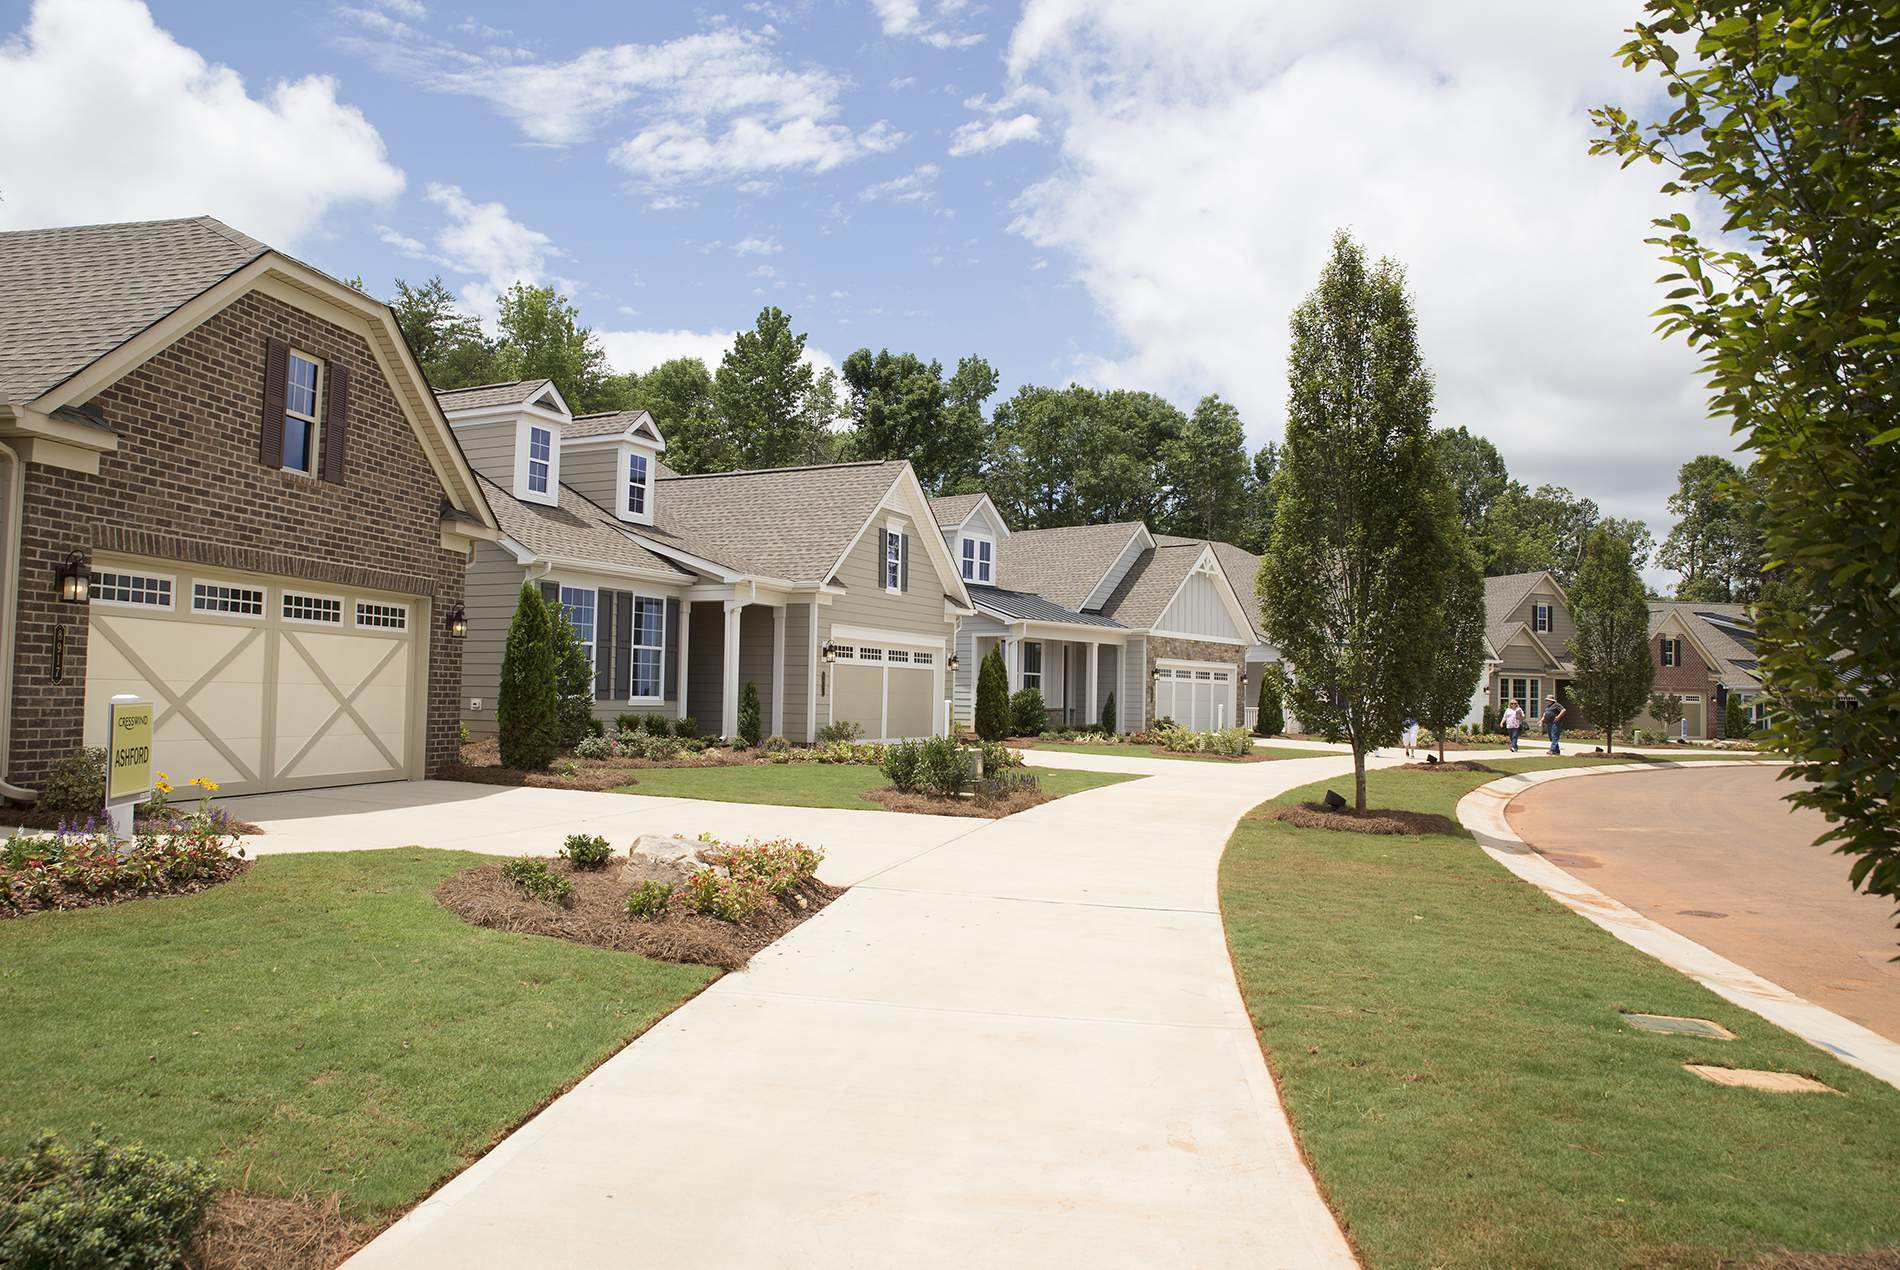 This Can Be A Innovative Picture Of Patio Homes for Sale Charlotte Nc